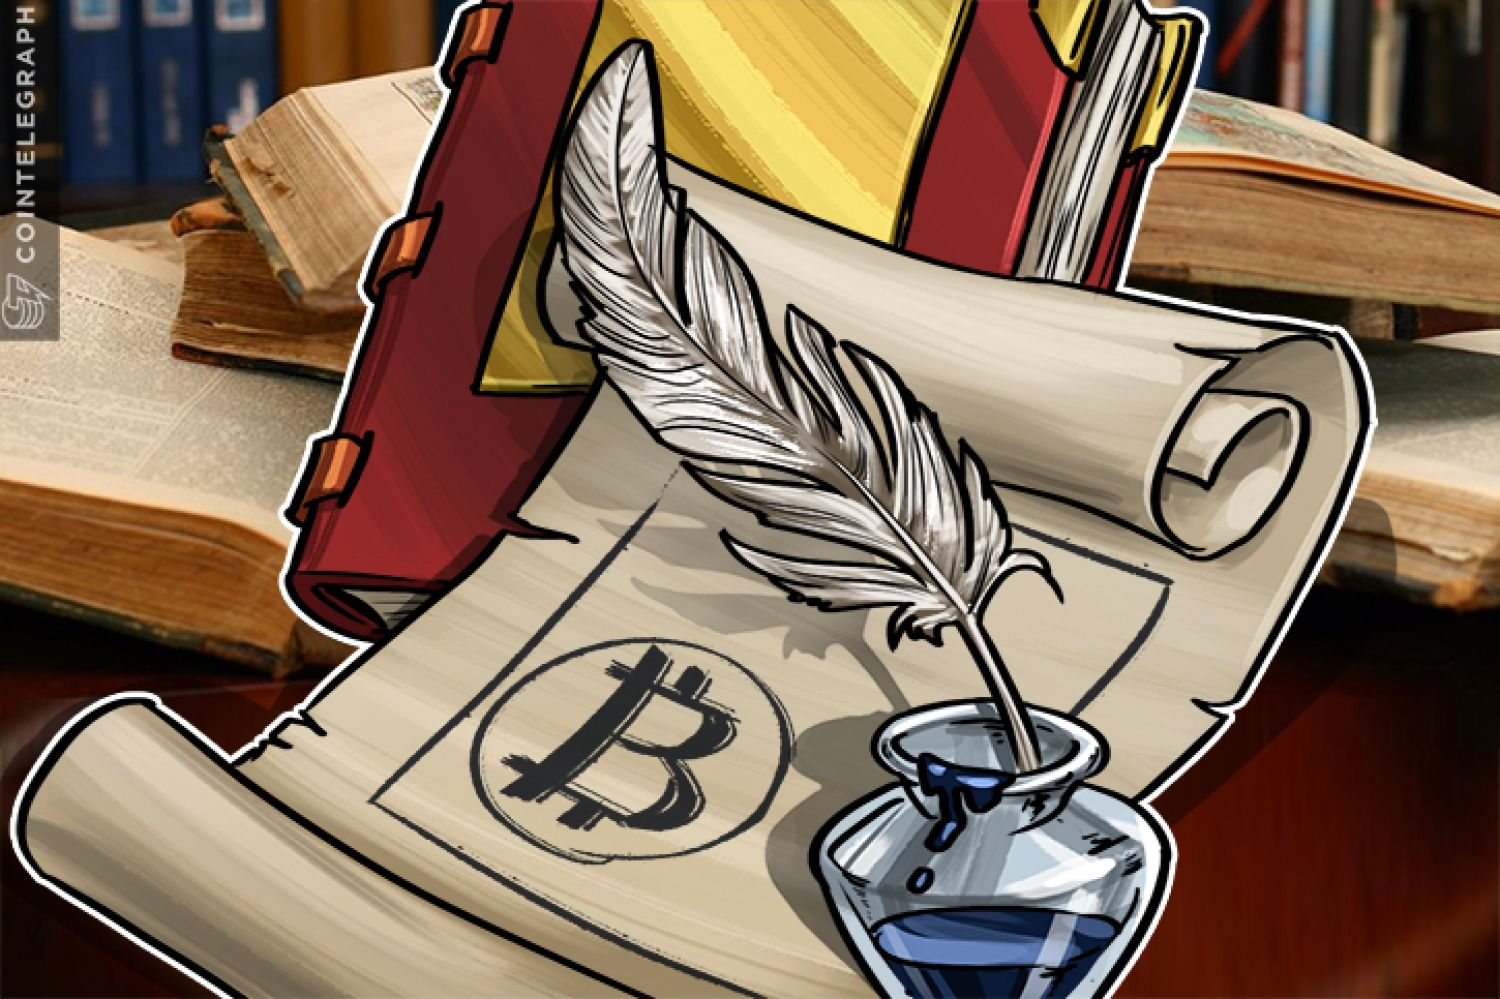 Manuscrito de Bitcoin